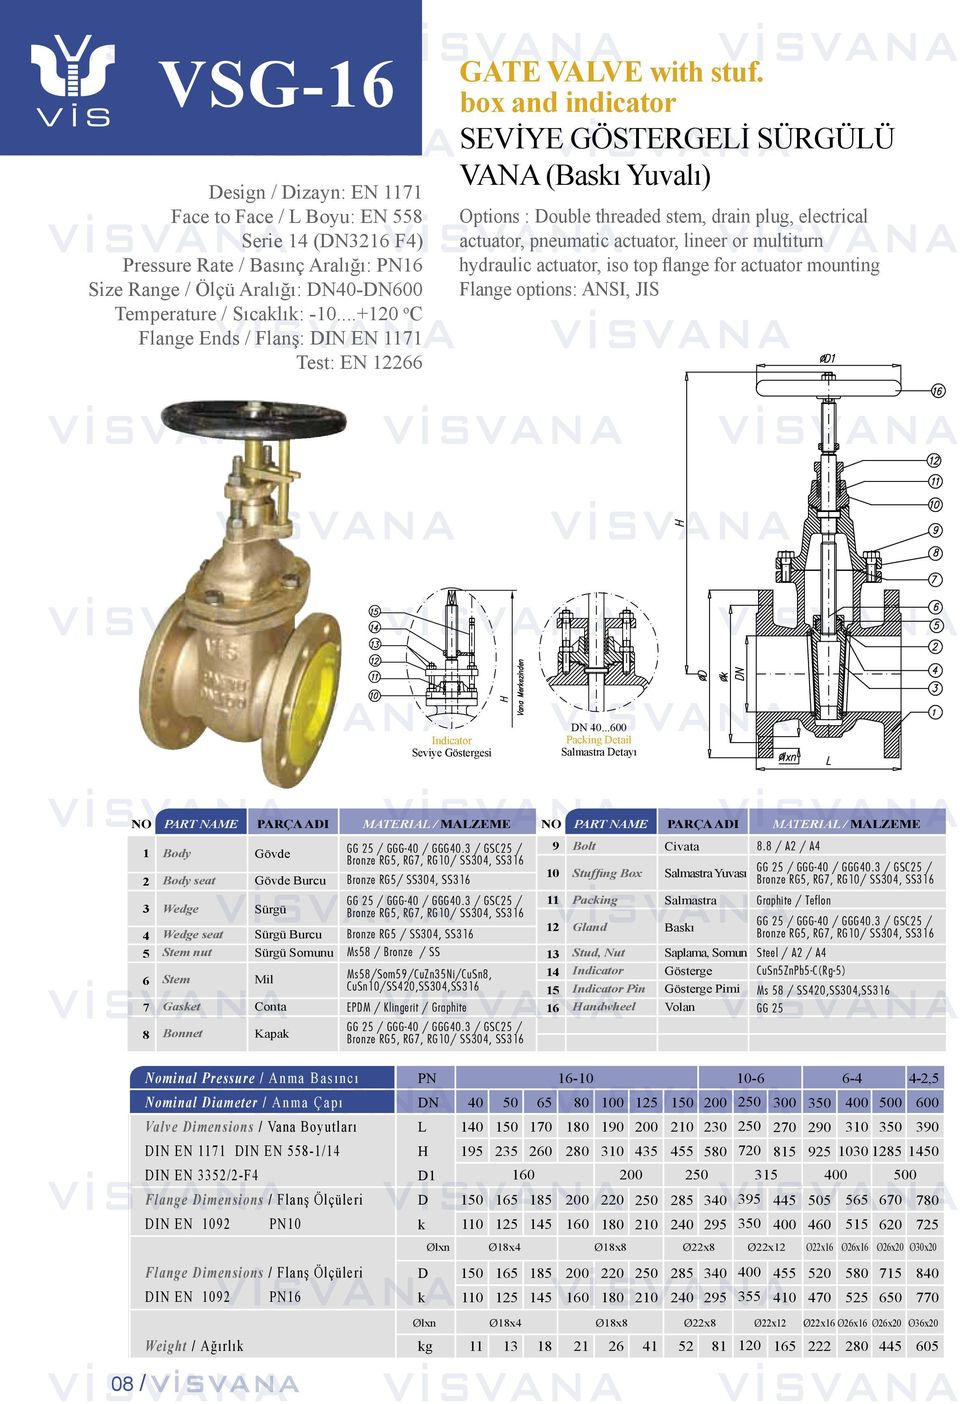 box and indicator SEVİYE GÖSTERGEİ SÜRGÜÜ VANA (Bası Yuvalı) Options : ouble threaded stem, drain plug, electrical actuator, pneumatic actuator, lineer or multiturn hydraulic actuator, iso top flange